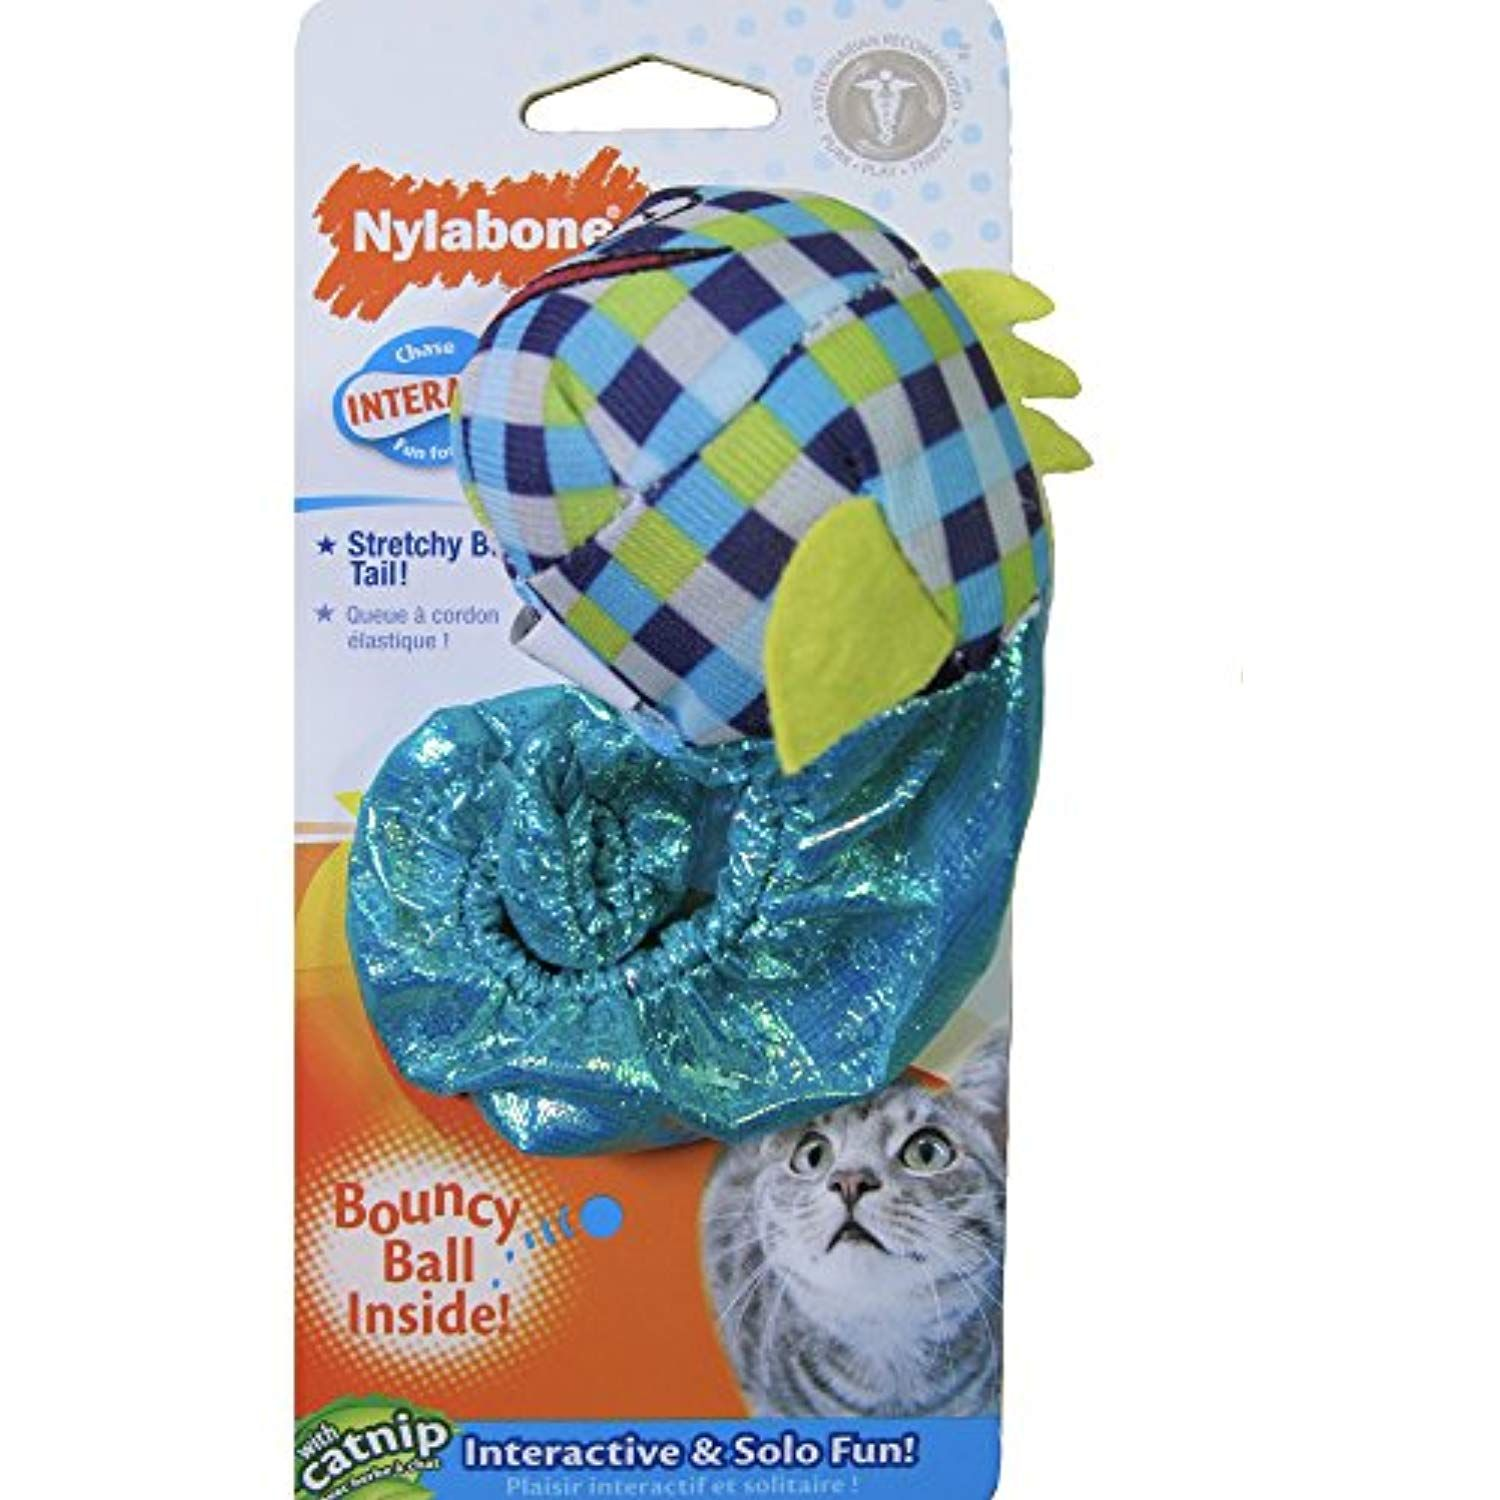 Nylabone Stretchy Bungee Tail Fish with Bouncy Ball and